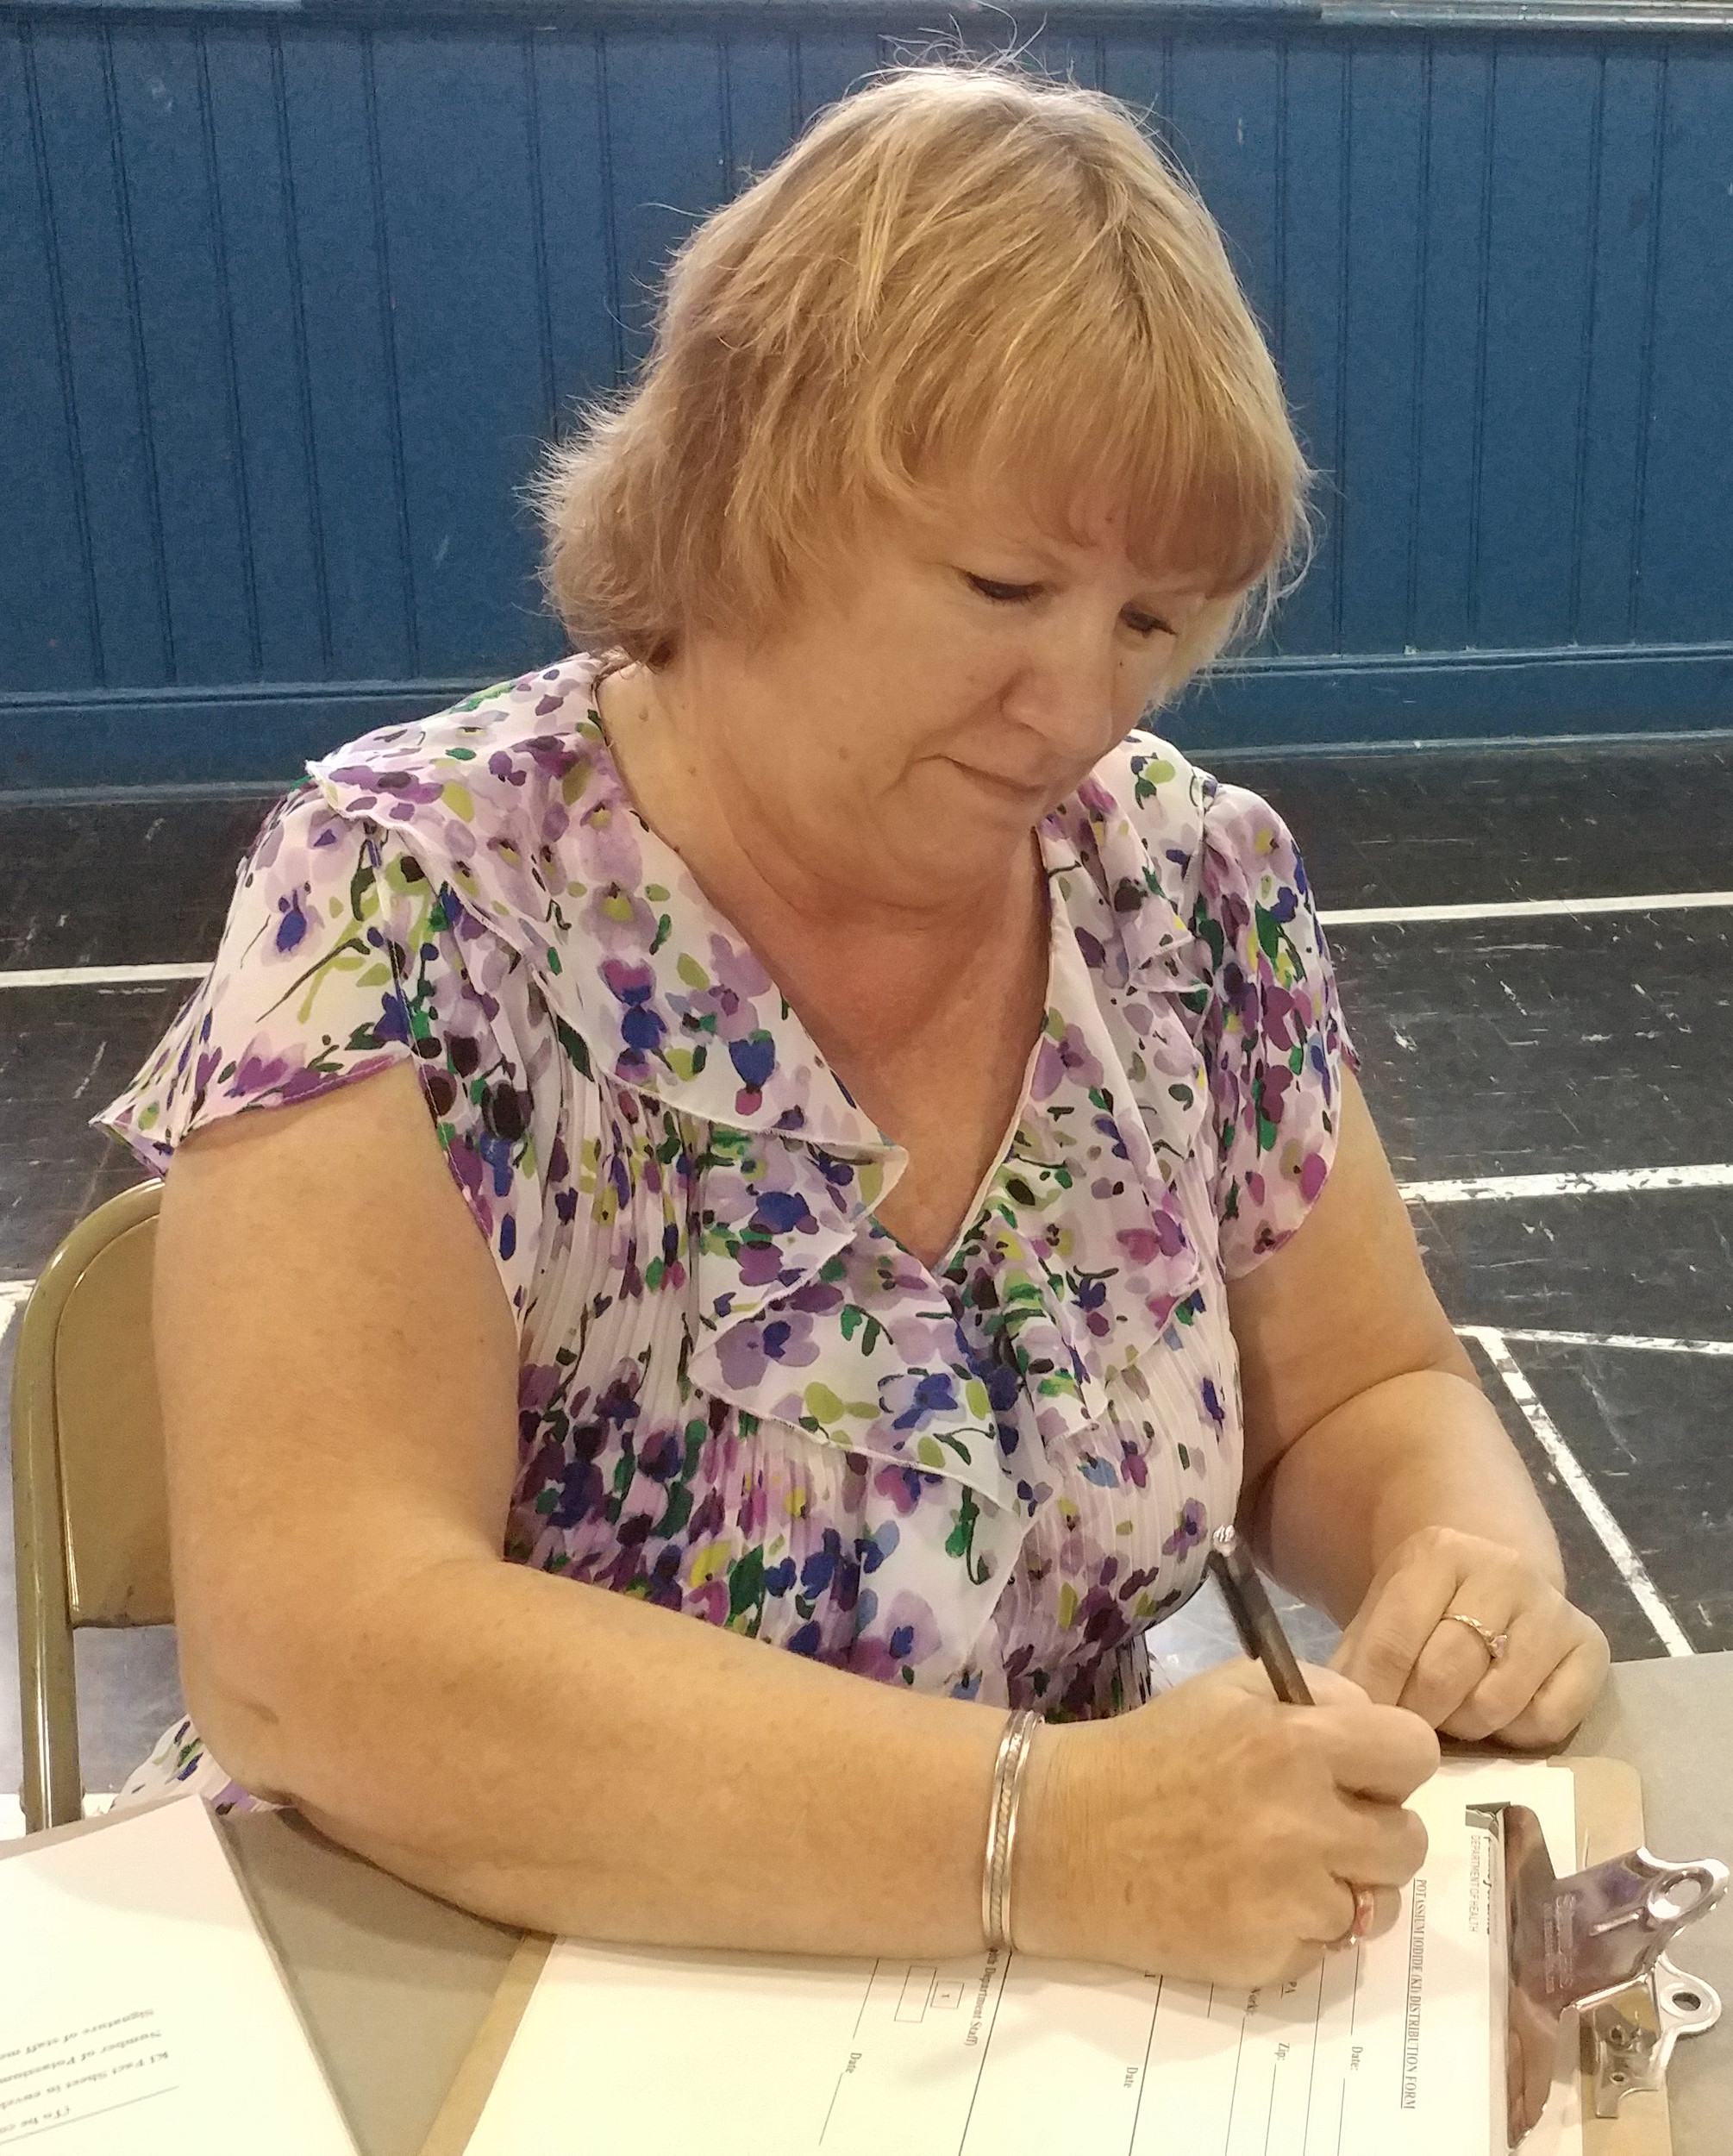 Cheryl Walker of Middletown fills out the paperwork for free potassium iodide pills at the MCSO Building on the evening of Aug. 24.